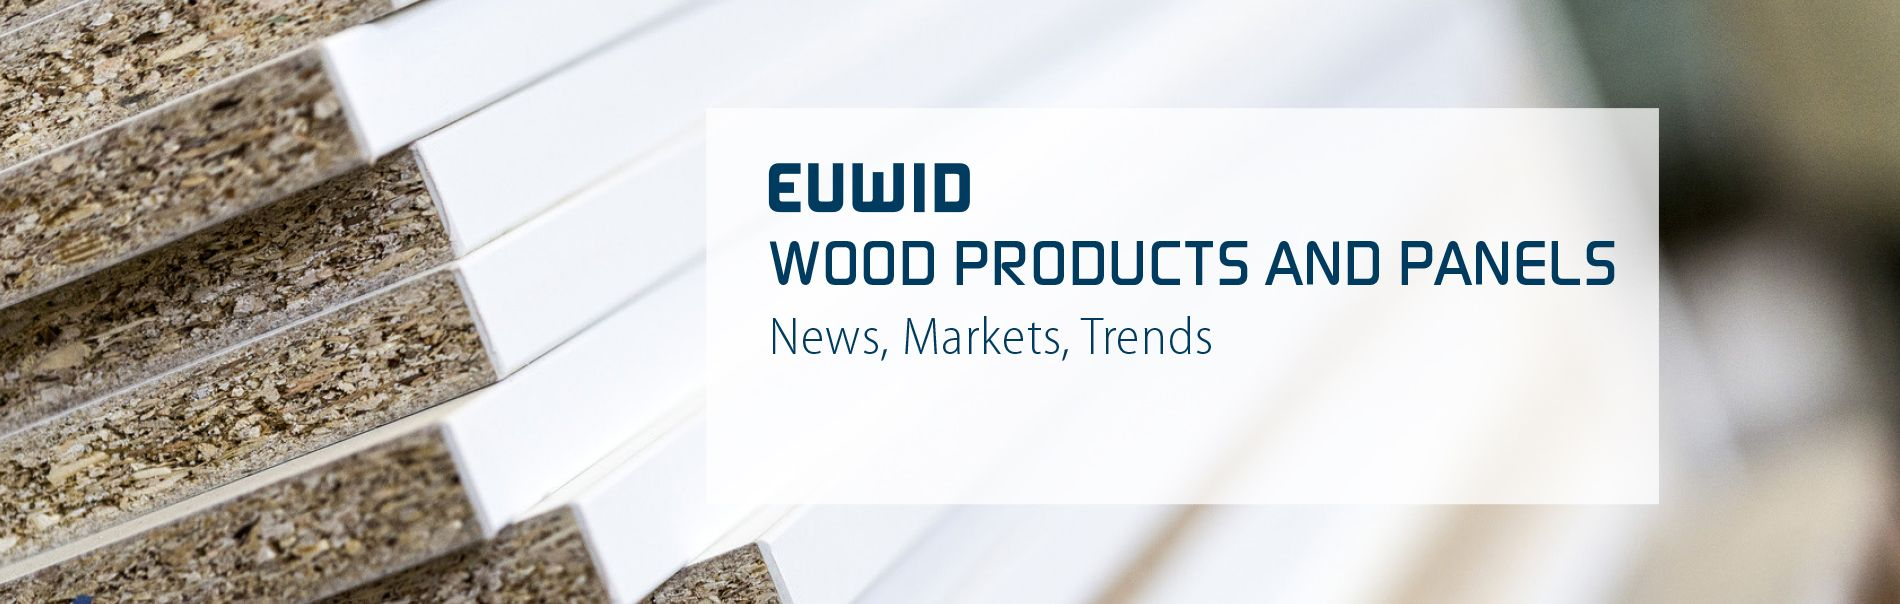 EUWID Wood Products And Panels & Timber